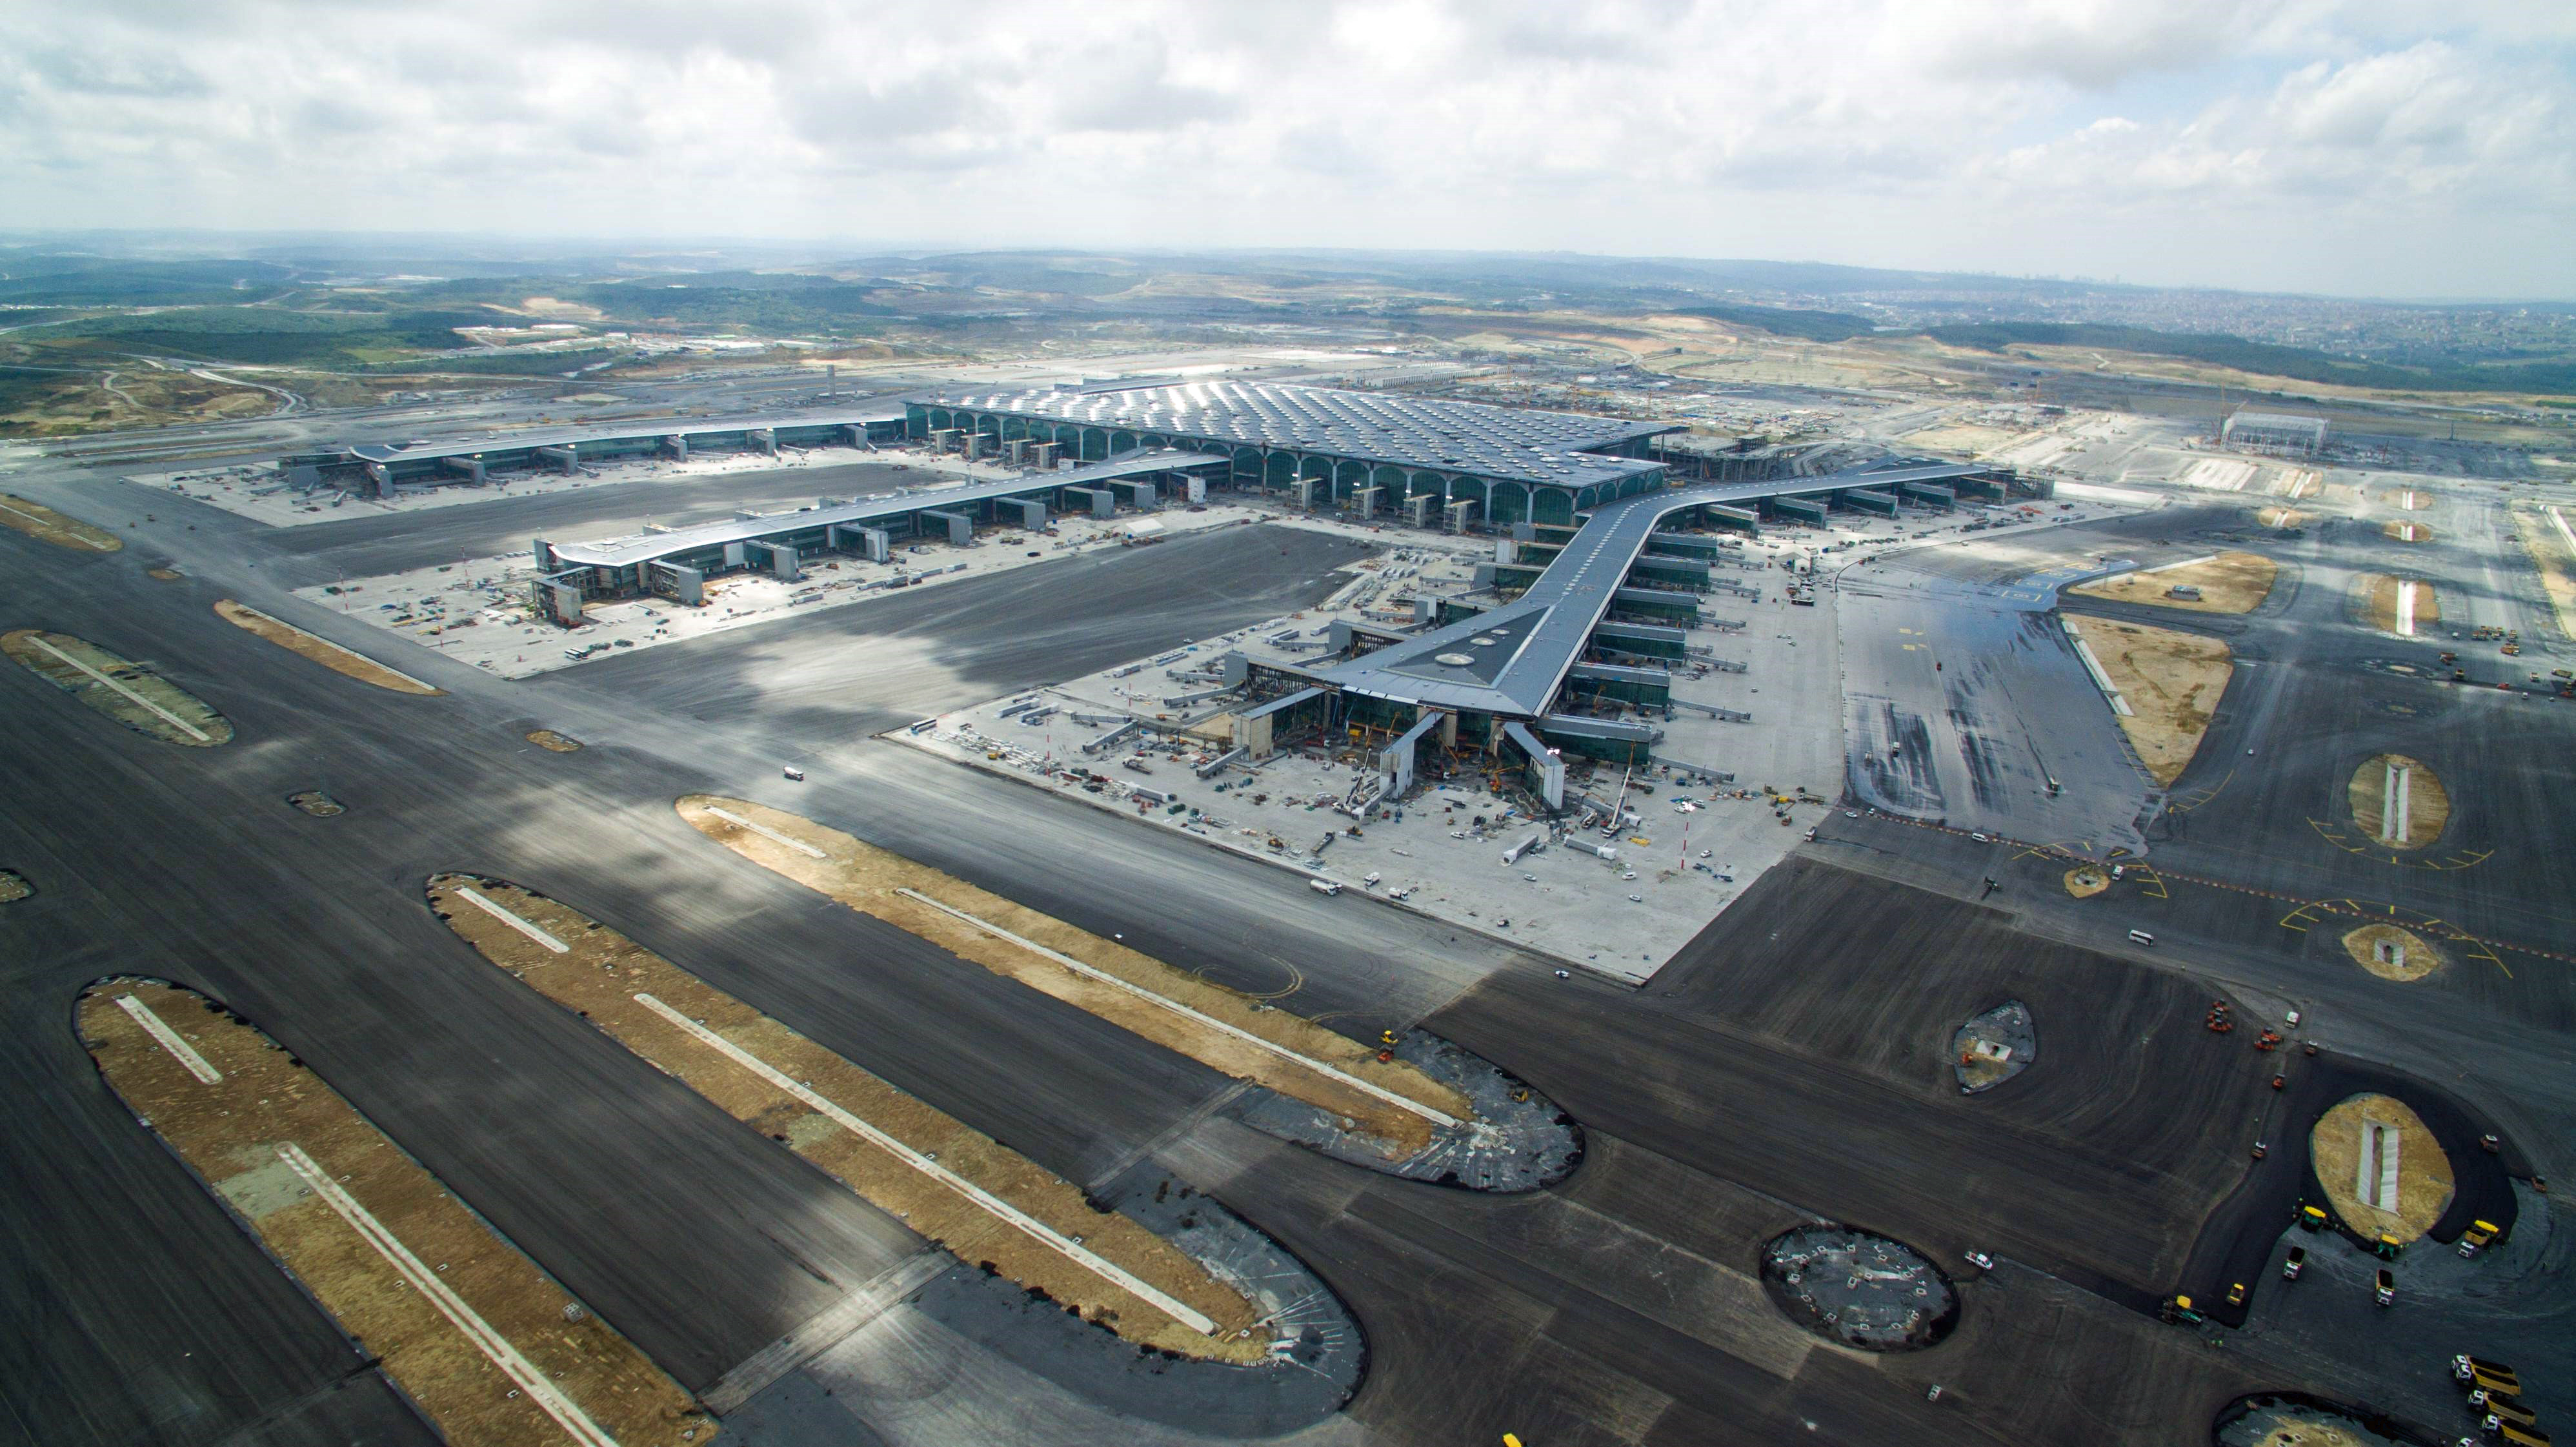 Last month saw the opening of Istanbul airport touted as one of world's largest, mega projects are seen as a bid to support the ailing construction in Turkey.